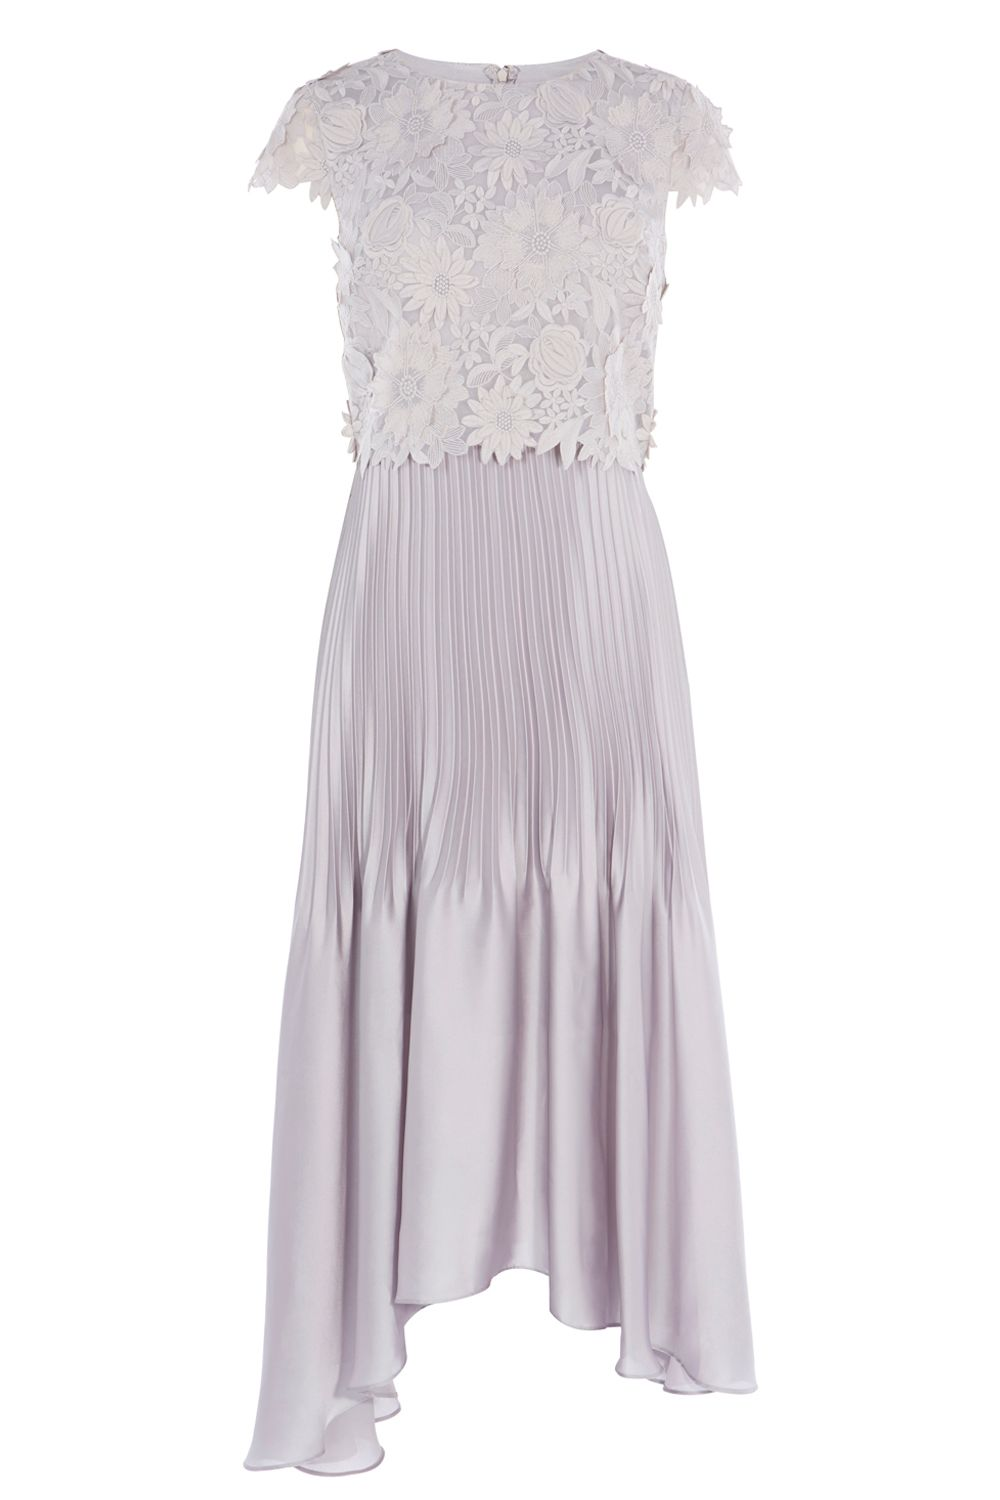 Vintage Inspired Cocktail Dresses, Party Dresses Coast Darianna Dress Silver £149.00 AT vintagedancer.com